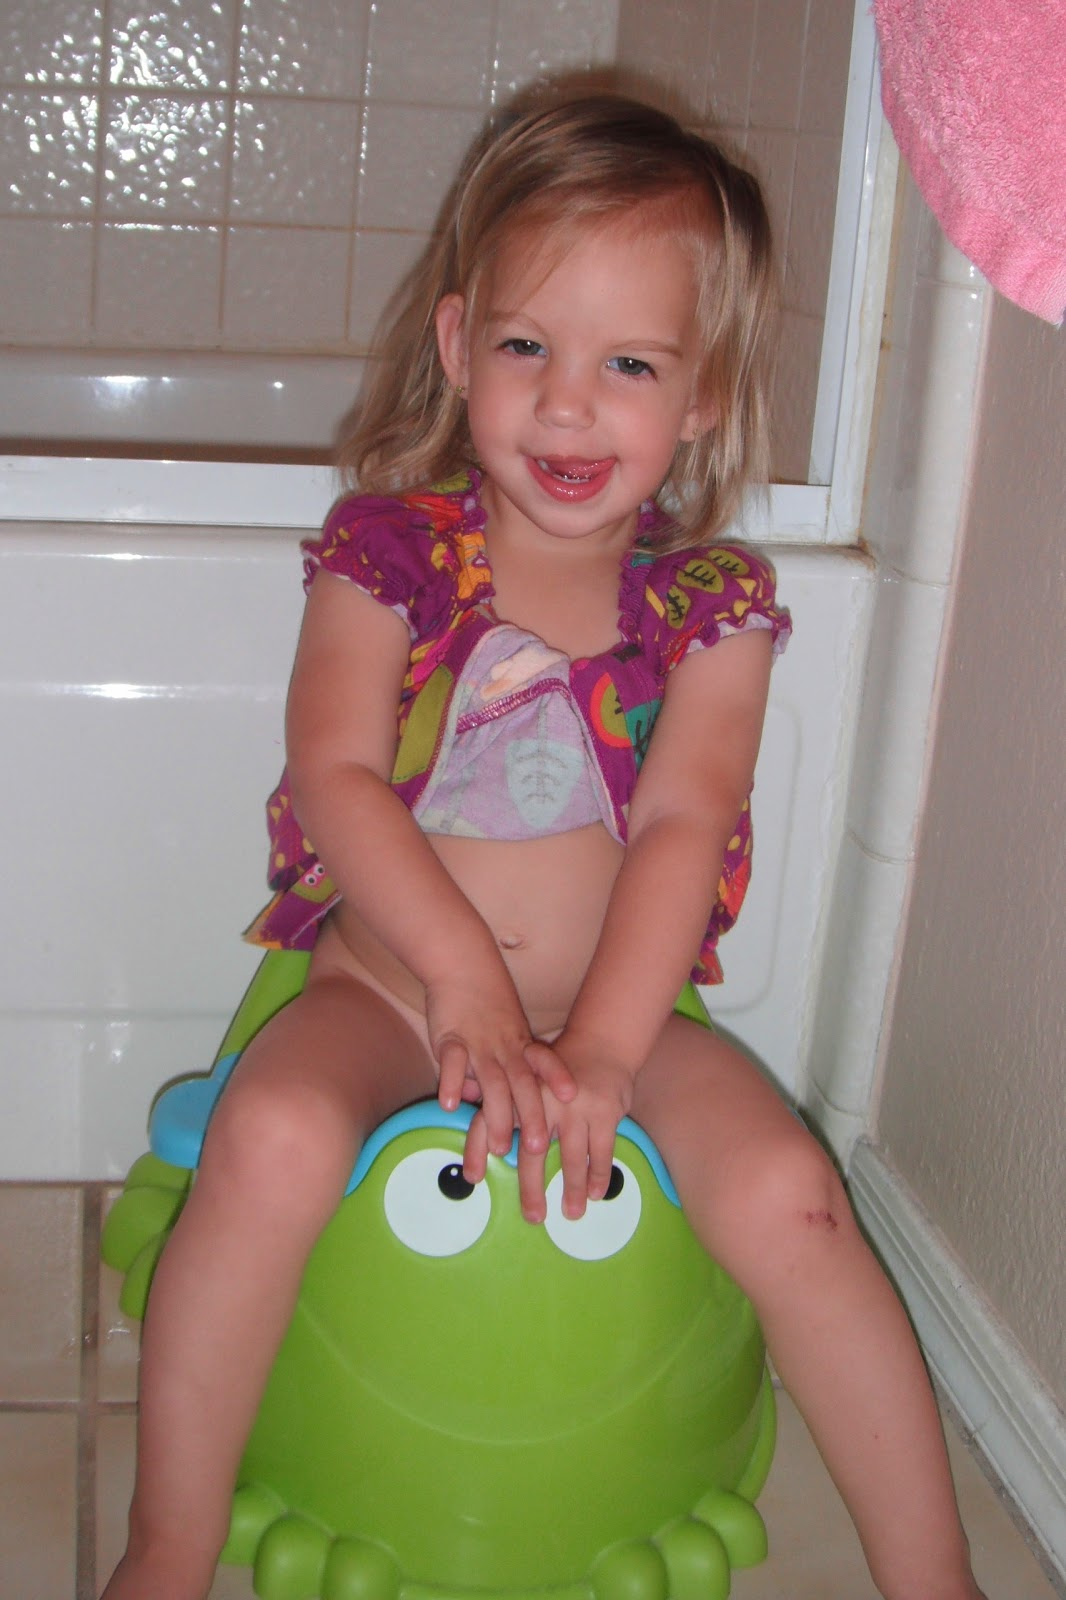 Pictures Of Little Girls 2 3 Potty Training Baby Toilet